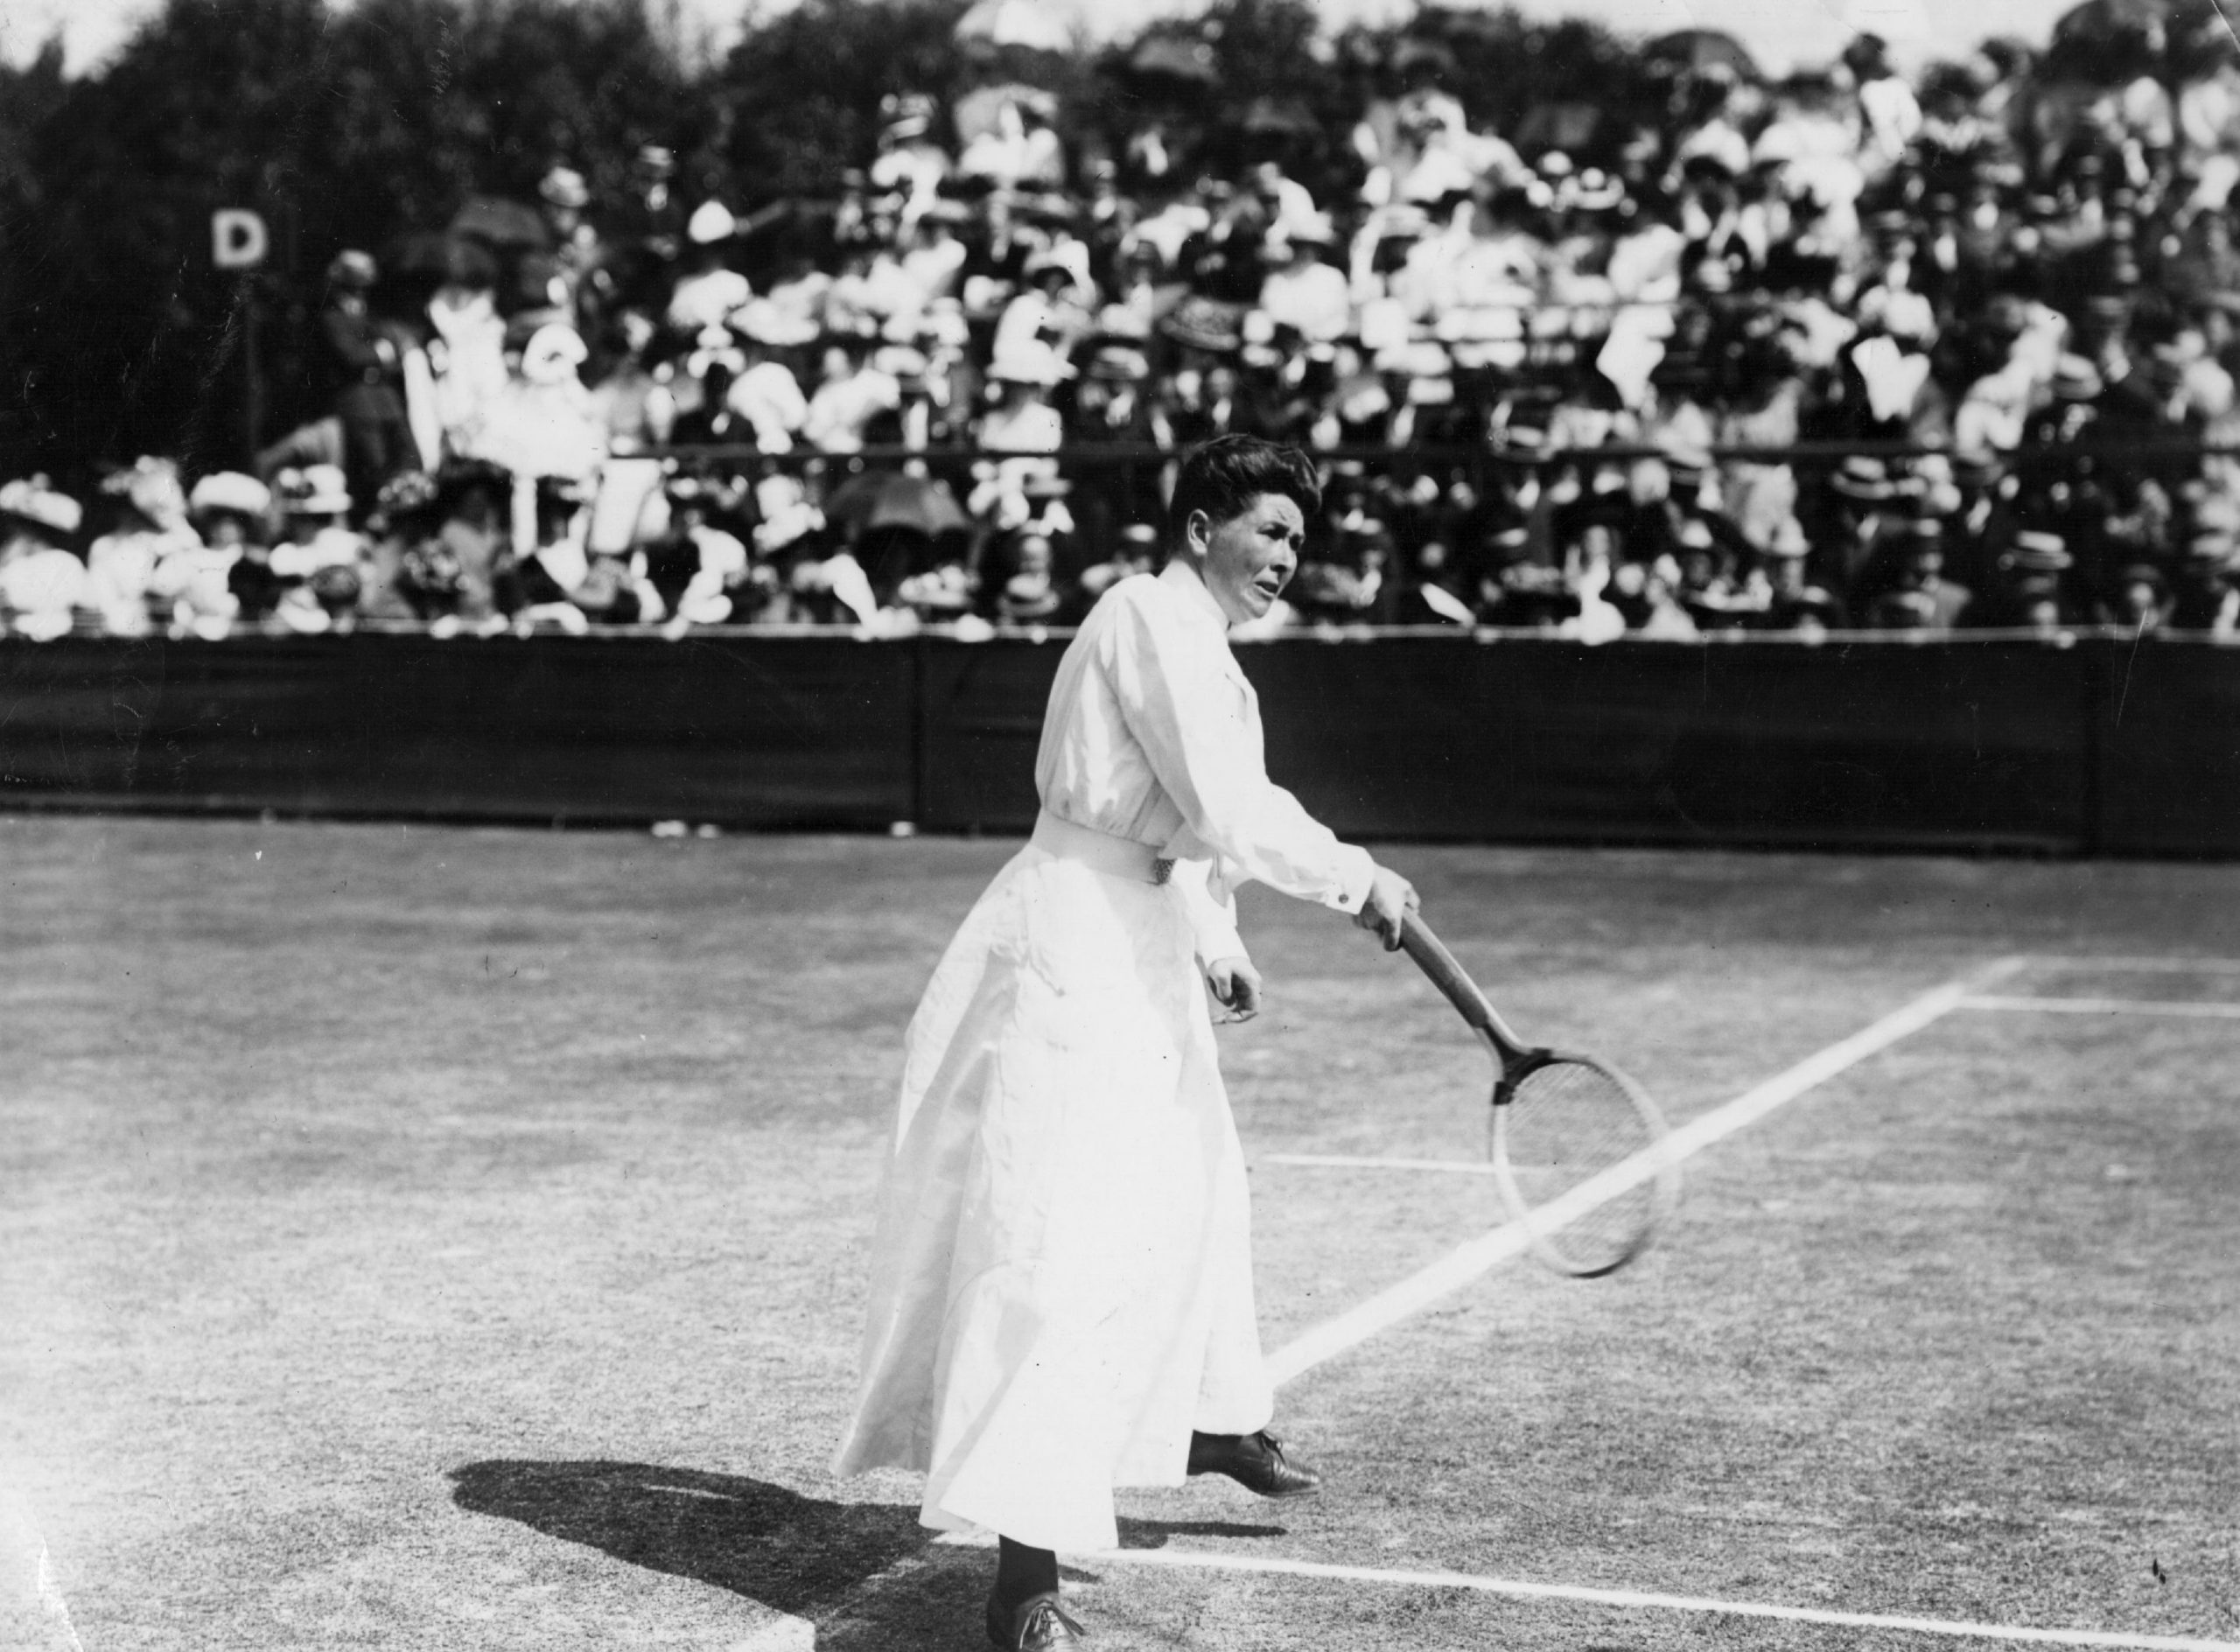 Charlotte Cooper em Wimbledon. FOTO: Topical Press Agency/Getty Images